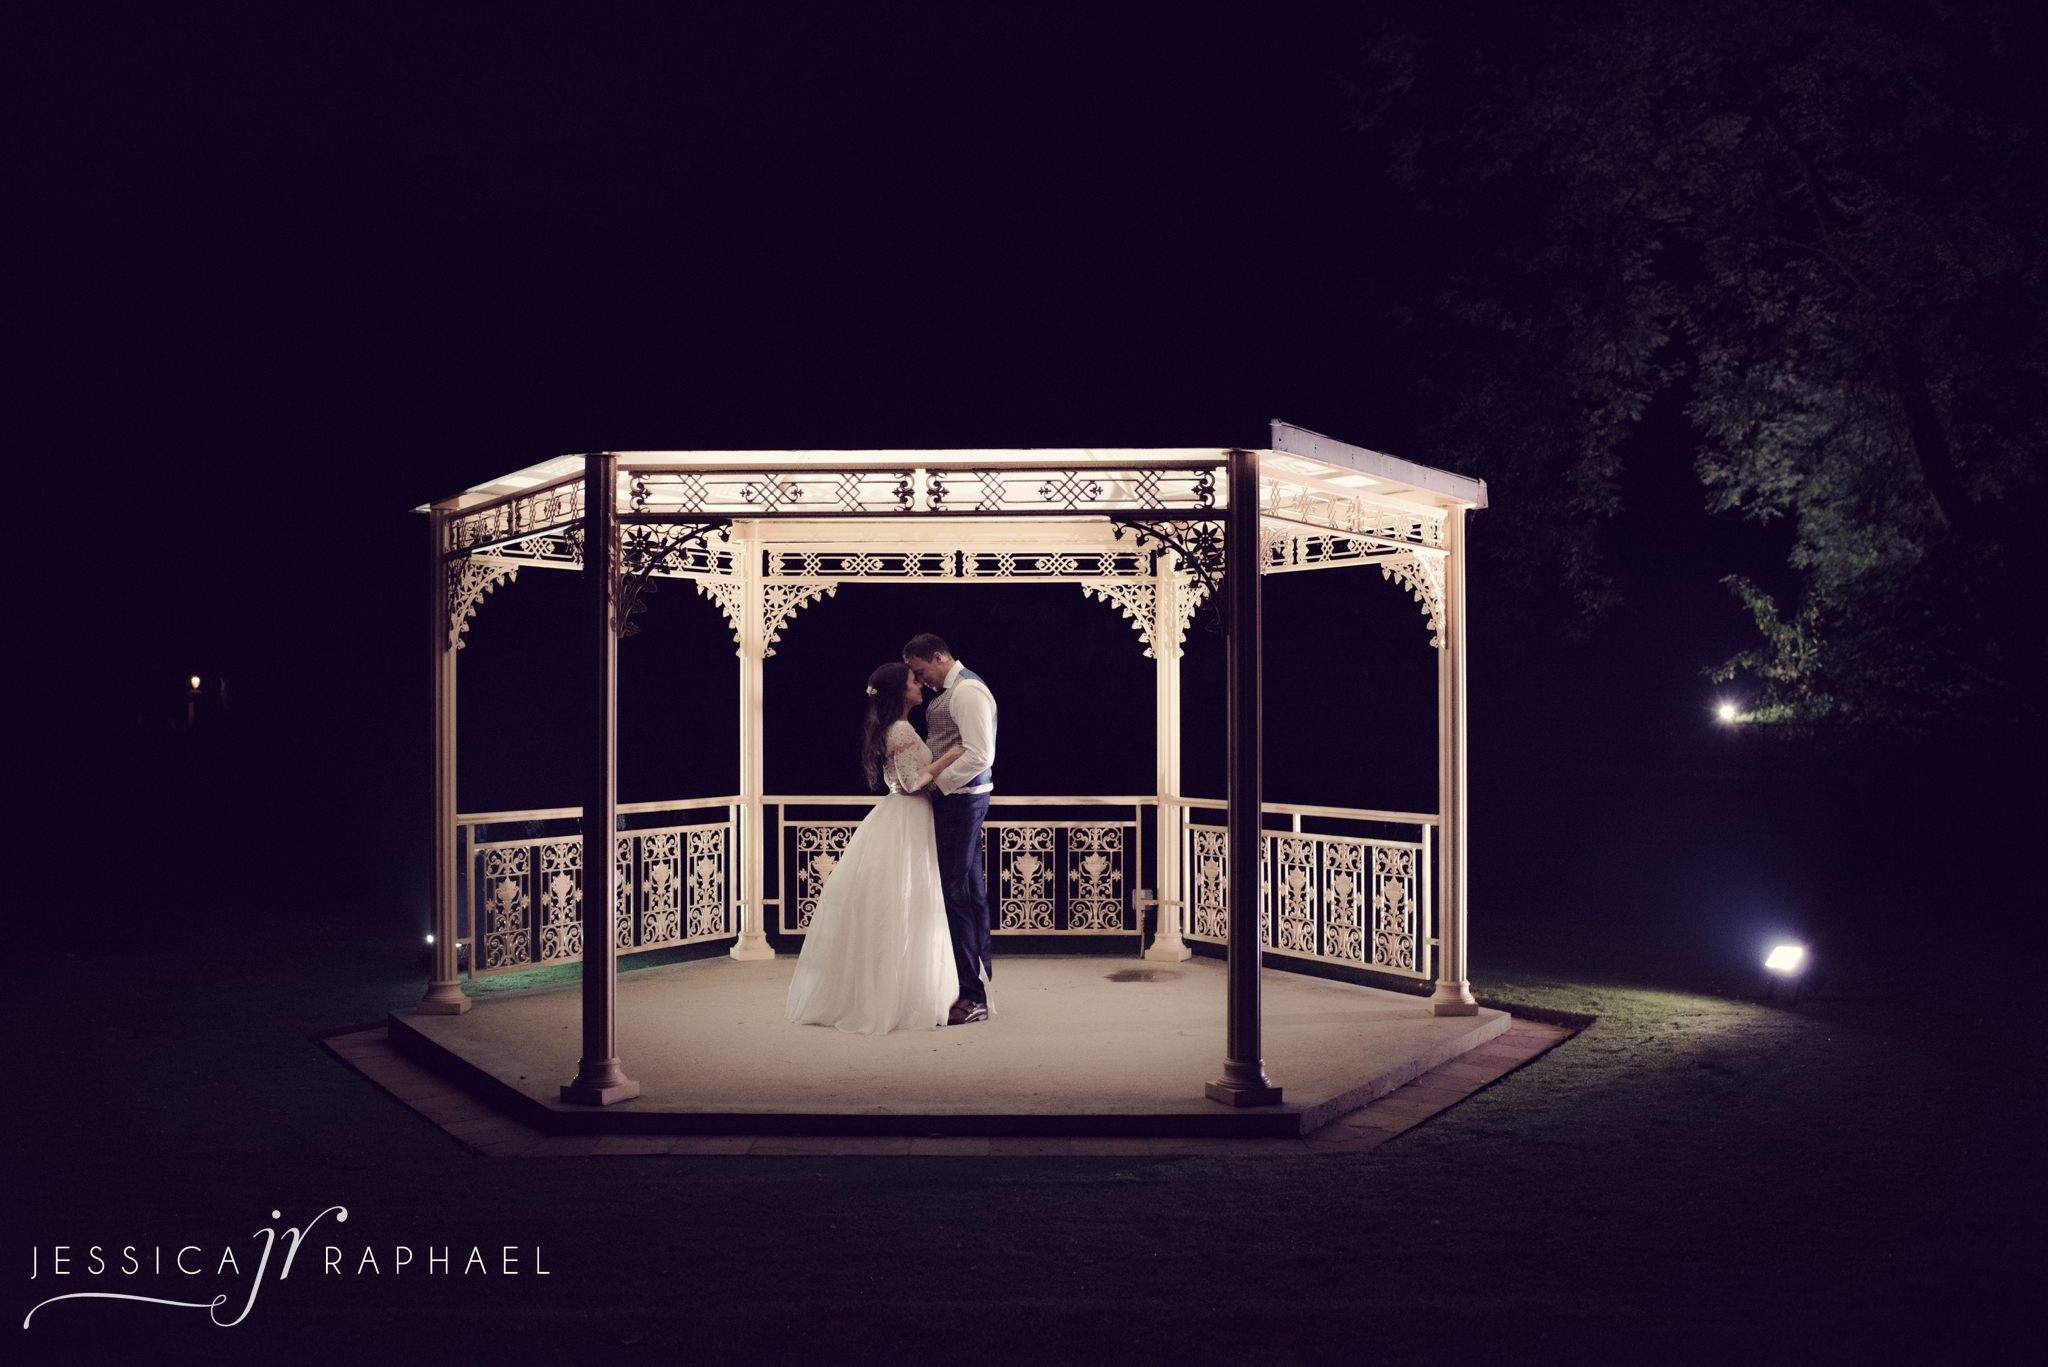 the-manor-house-bath-wiltshire-the-manor-house-weddings-bath-wedding-photographer-wiltshire-wedding-photographer-jessica-raphael-photography